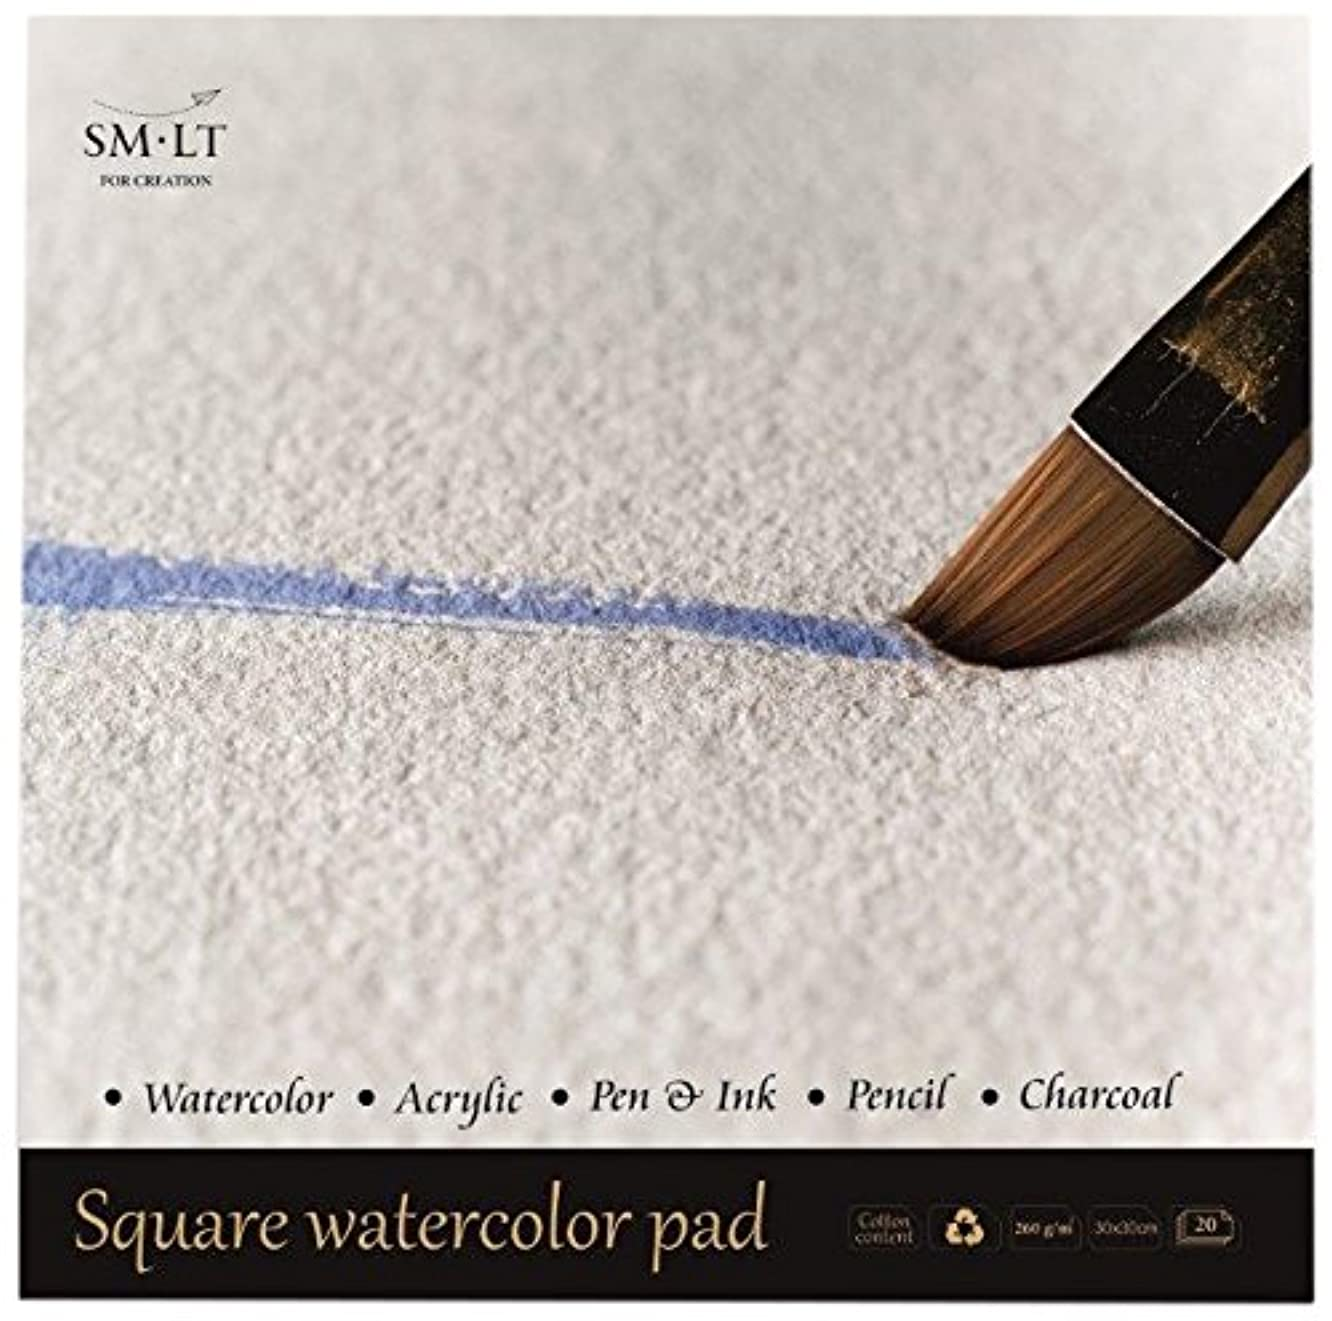 SM. LT English Watercolor Pads Square as 20?(260) Watercolour Paper 260gsm White 100% Recycled Cotton Age, and Acid-Free Paper 20?Sheets